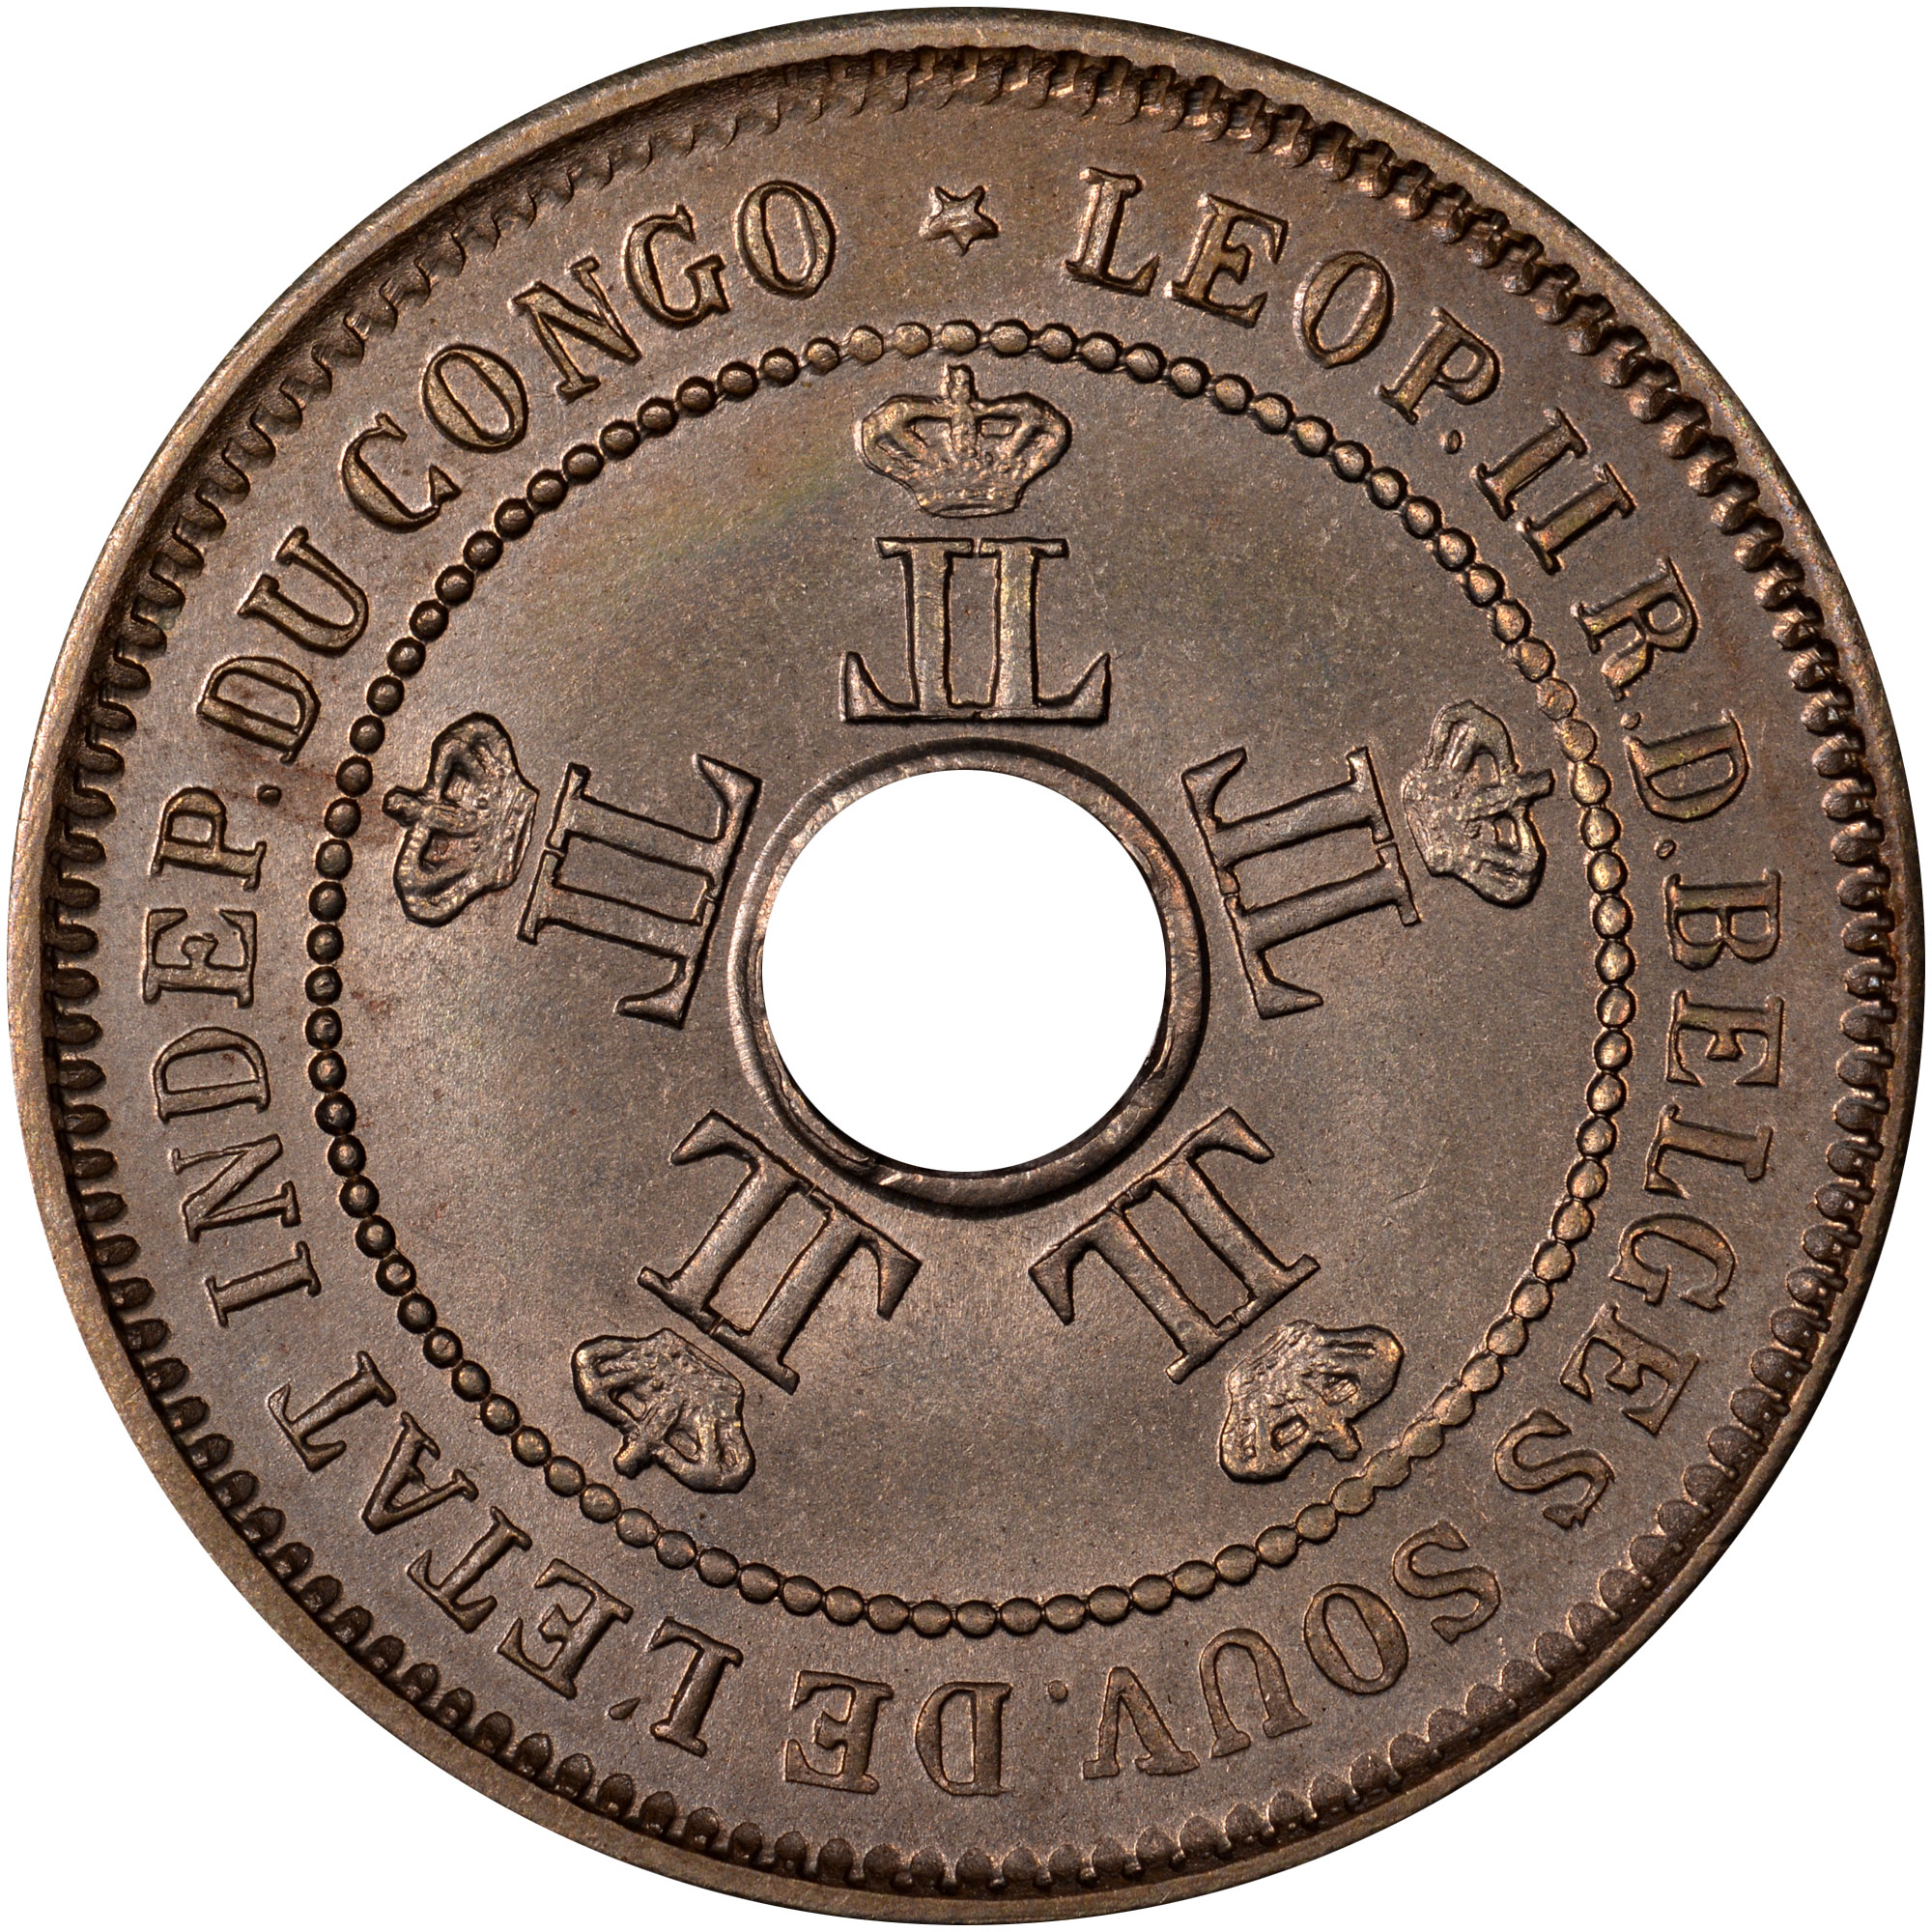 1906-1908/6 Congo Free State 5 Centimes obverse